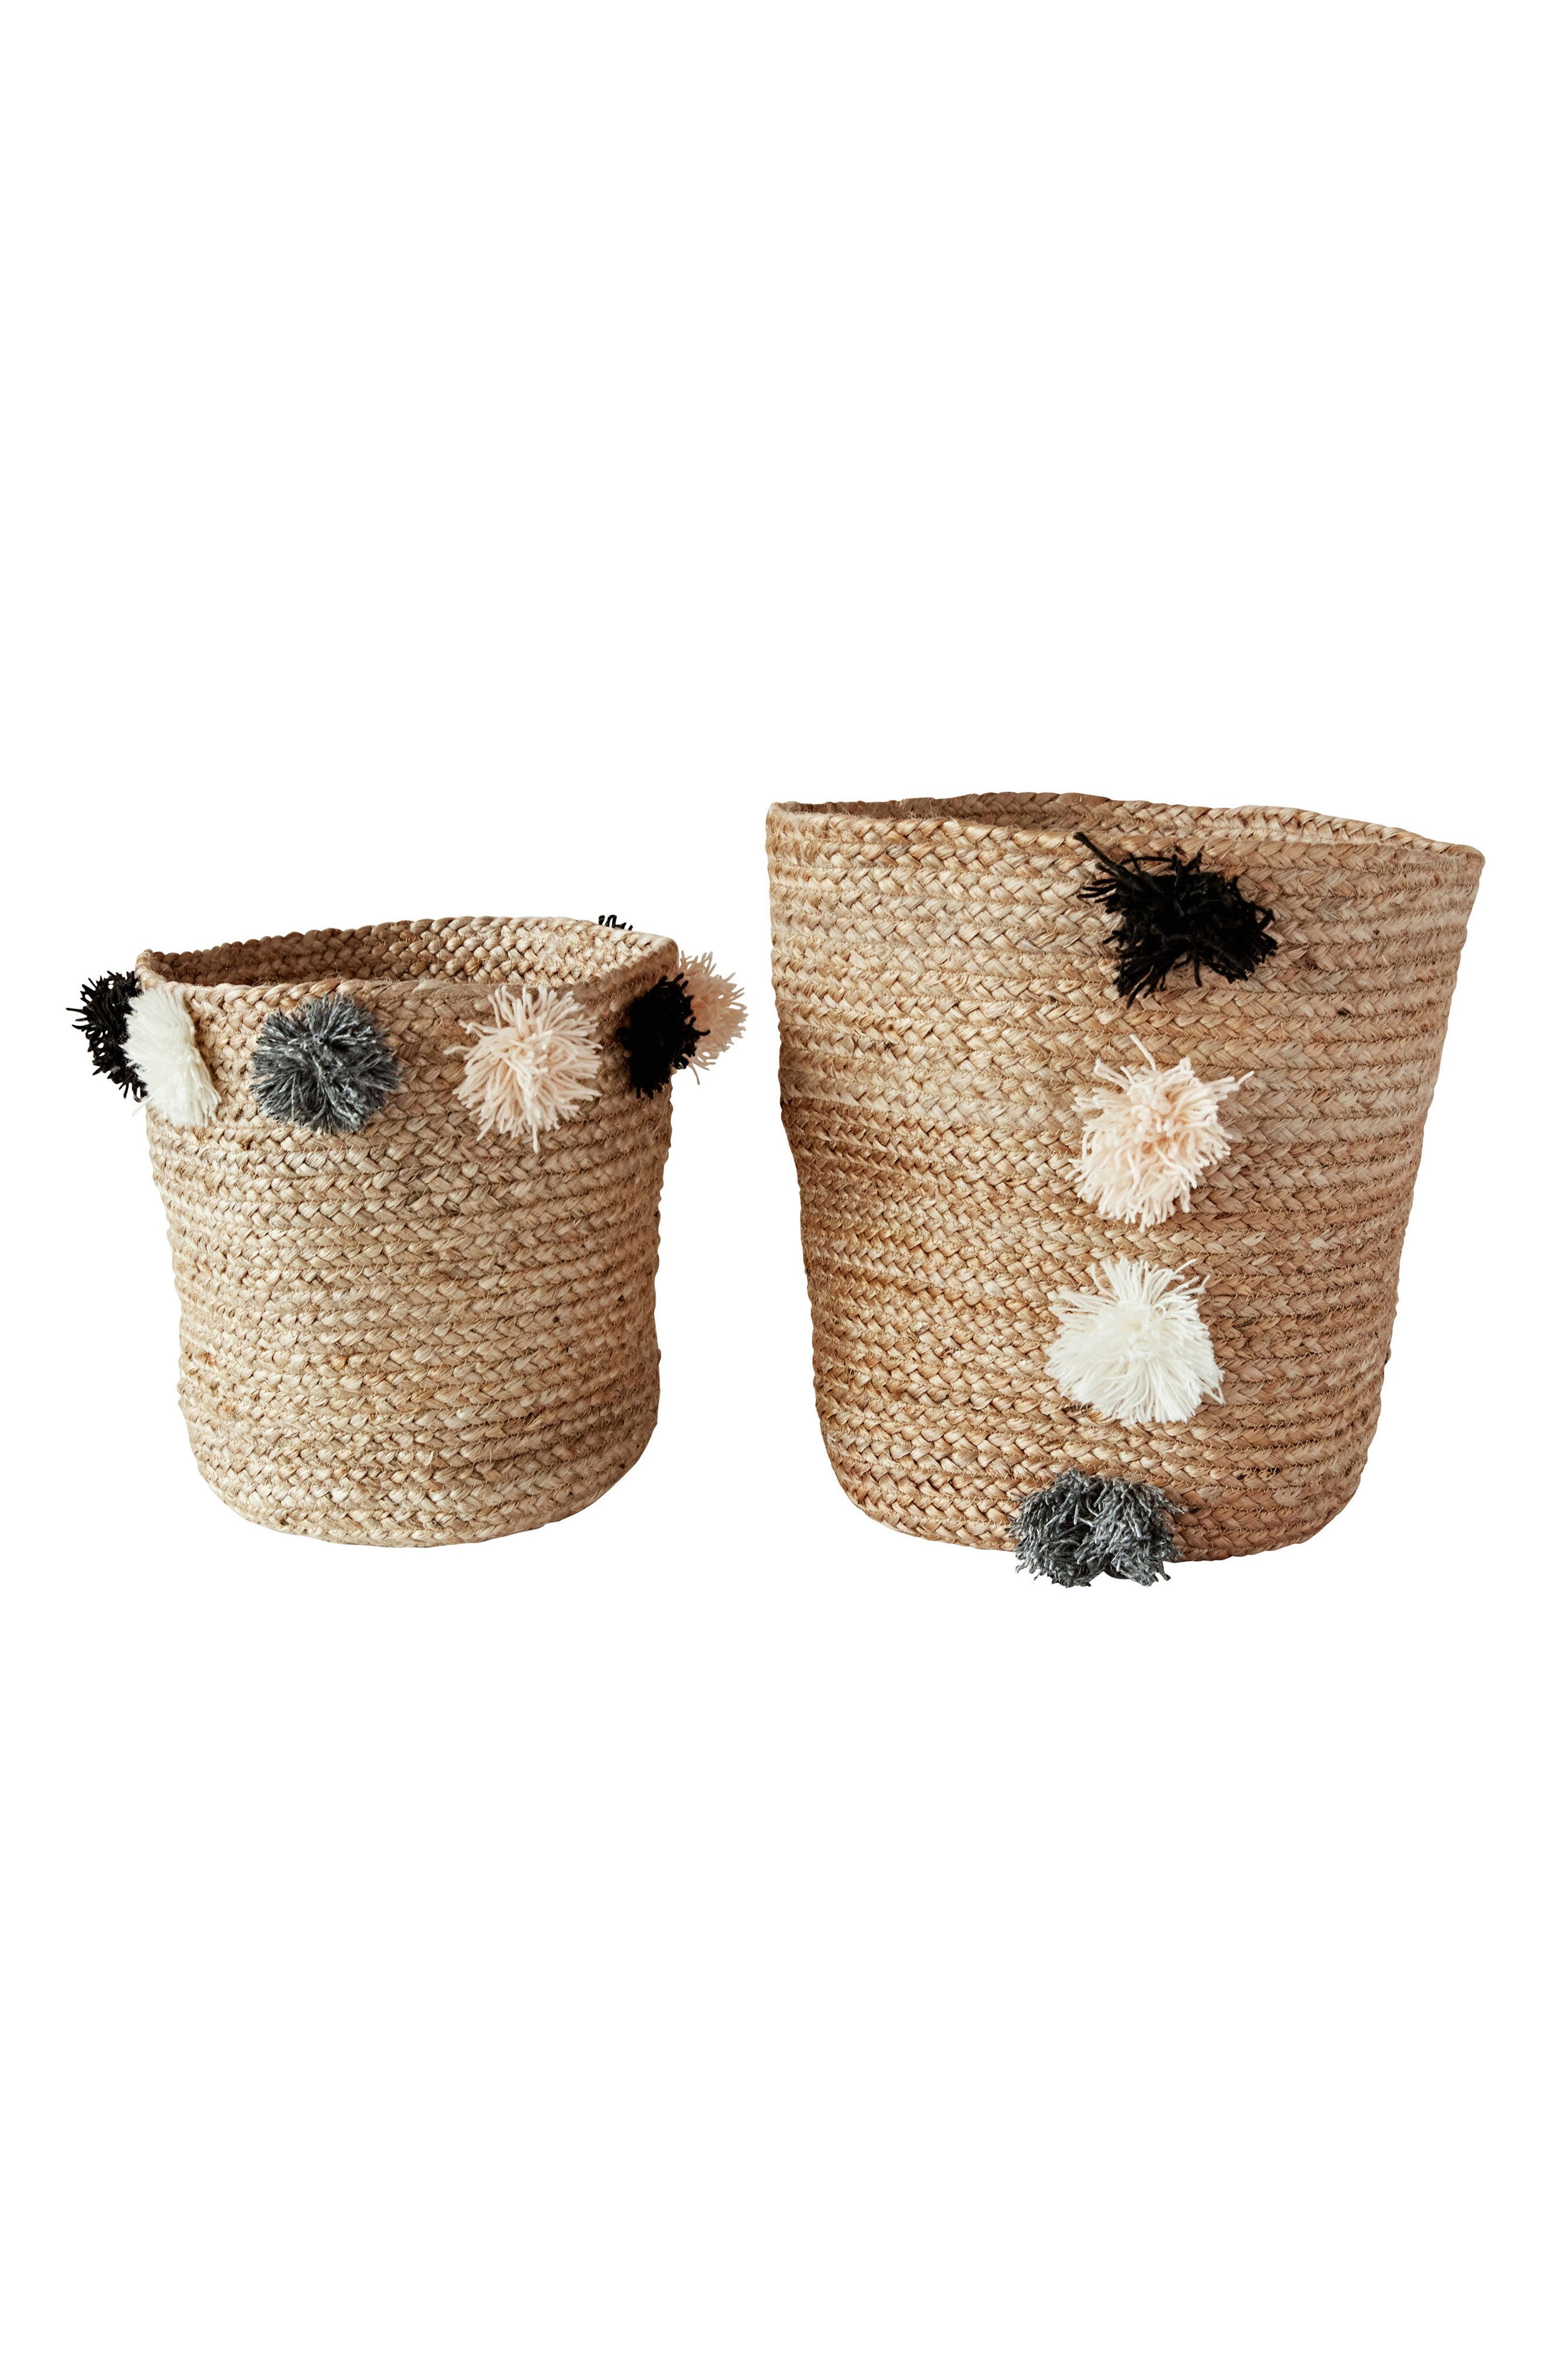 Set of 2 Jute Braided Baskets,                         Main,                         color, Natural